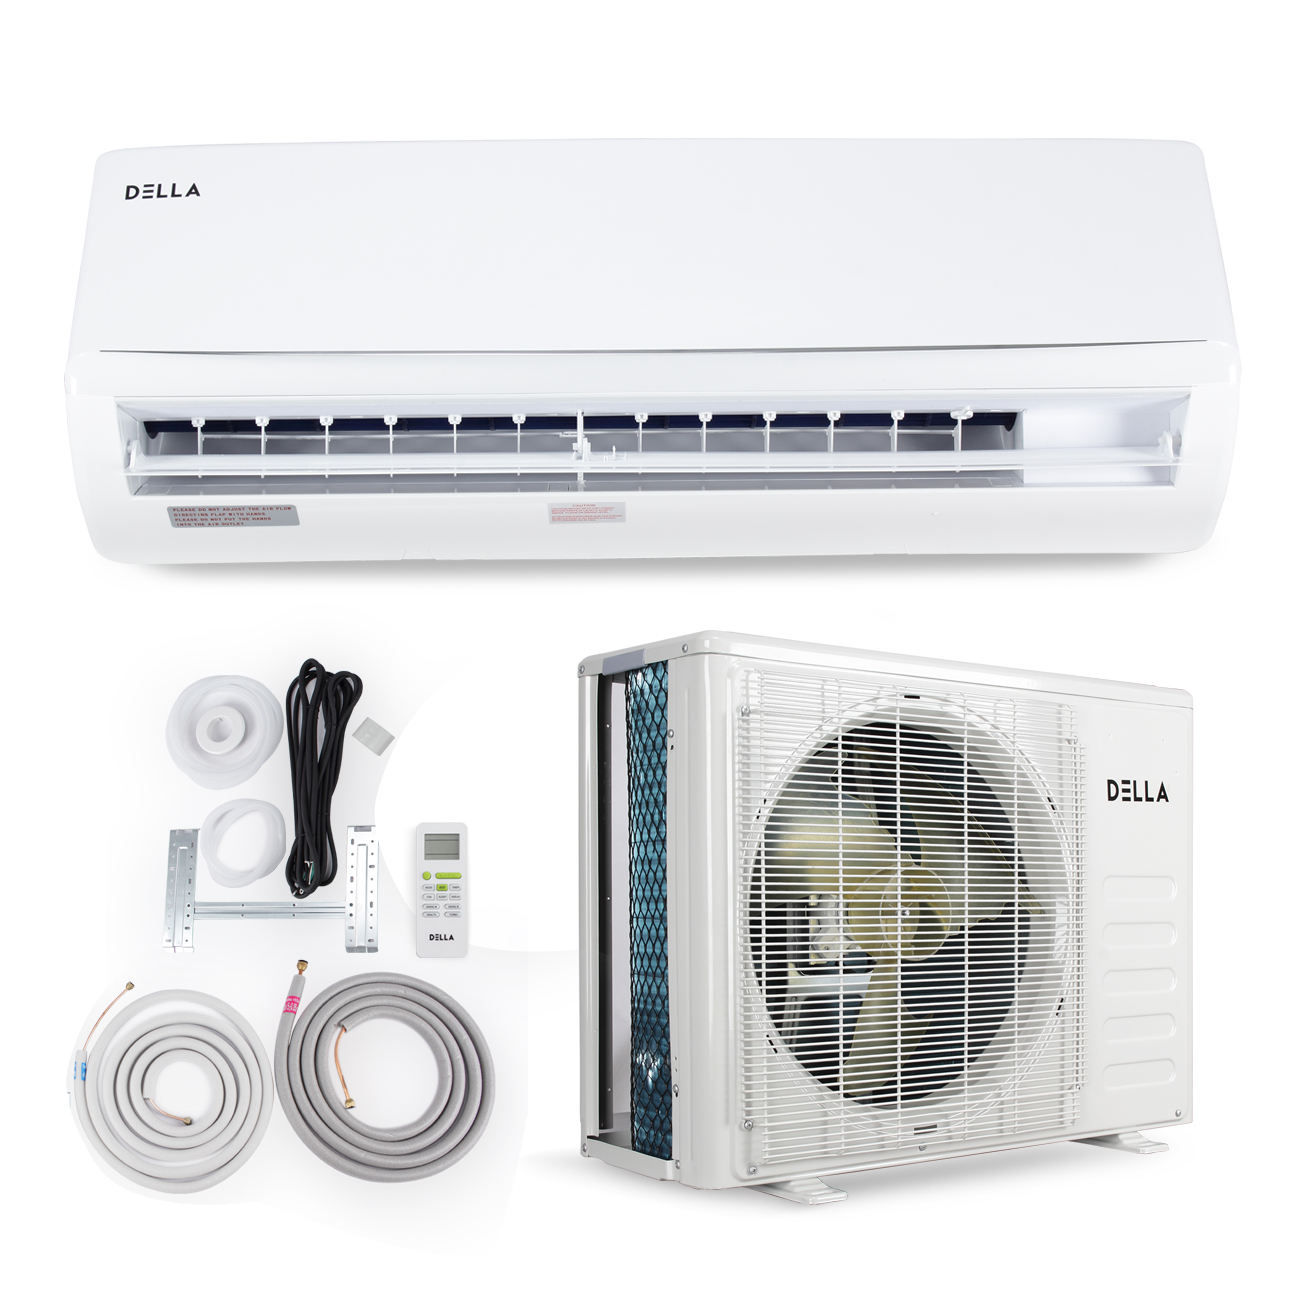 DELLA 9,000 BTU 230V Mini-Split AHRI Inverter Air Conditioner Heat Pump w/ 16' Installation Kit, 25 SEER